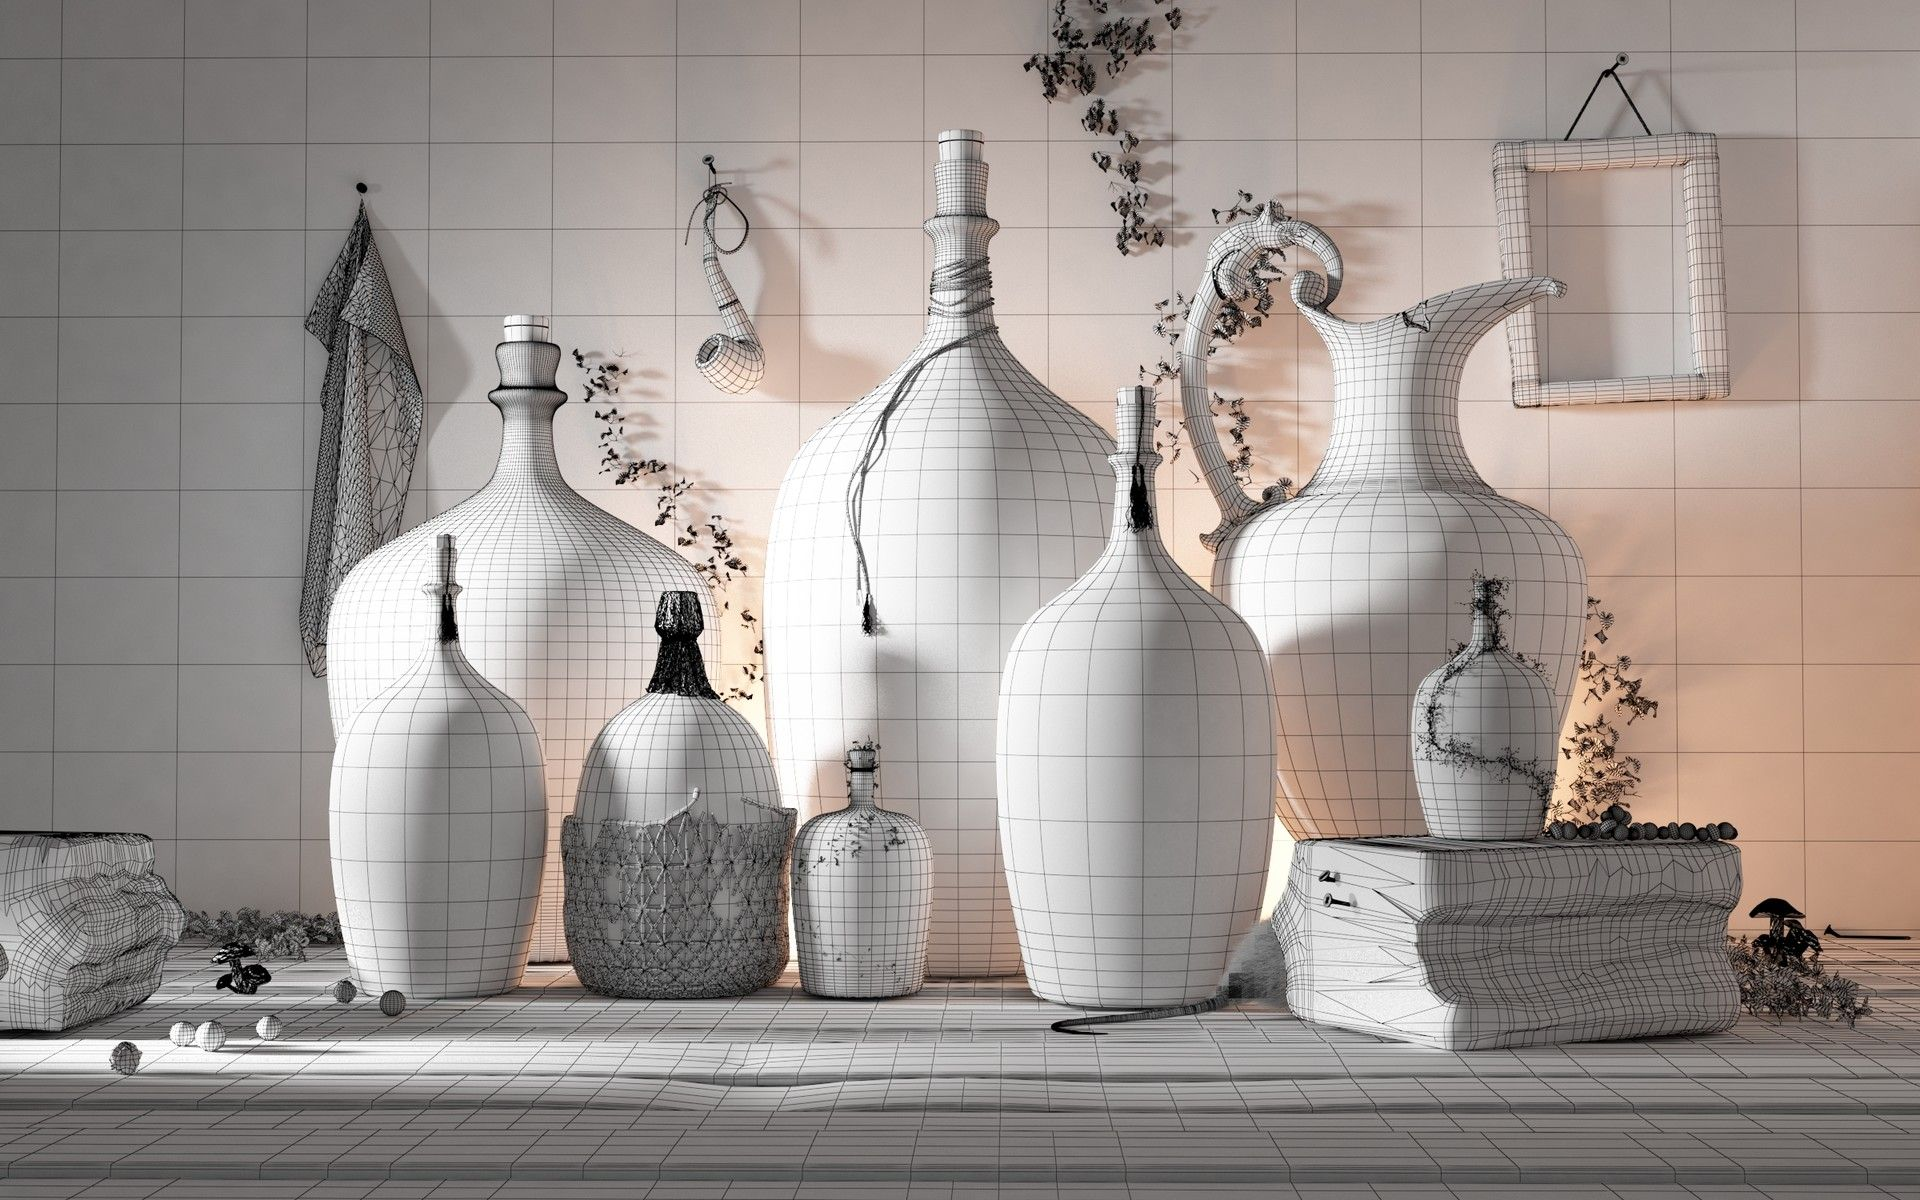 Making of Bottles of Life by Farid Ghanbari Farid Ghanbari is a